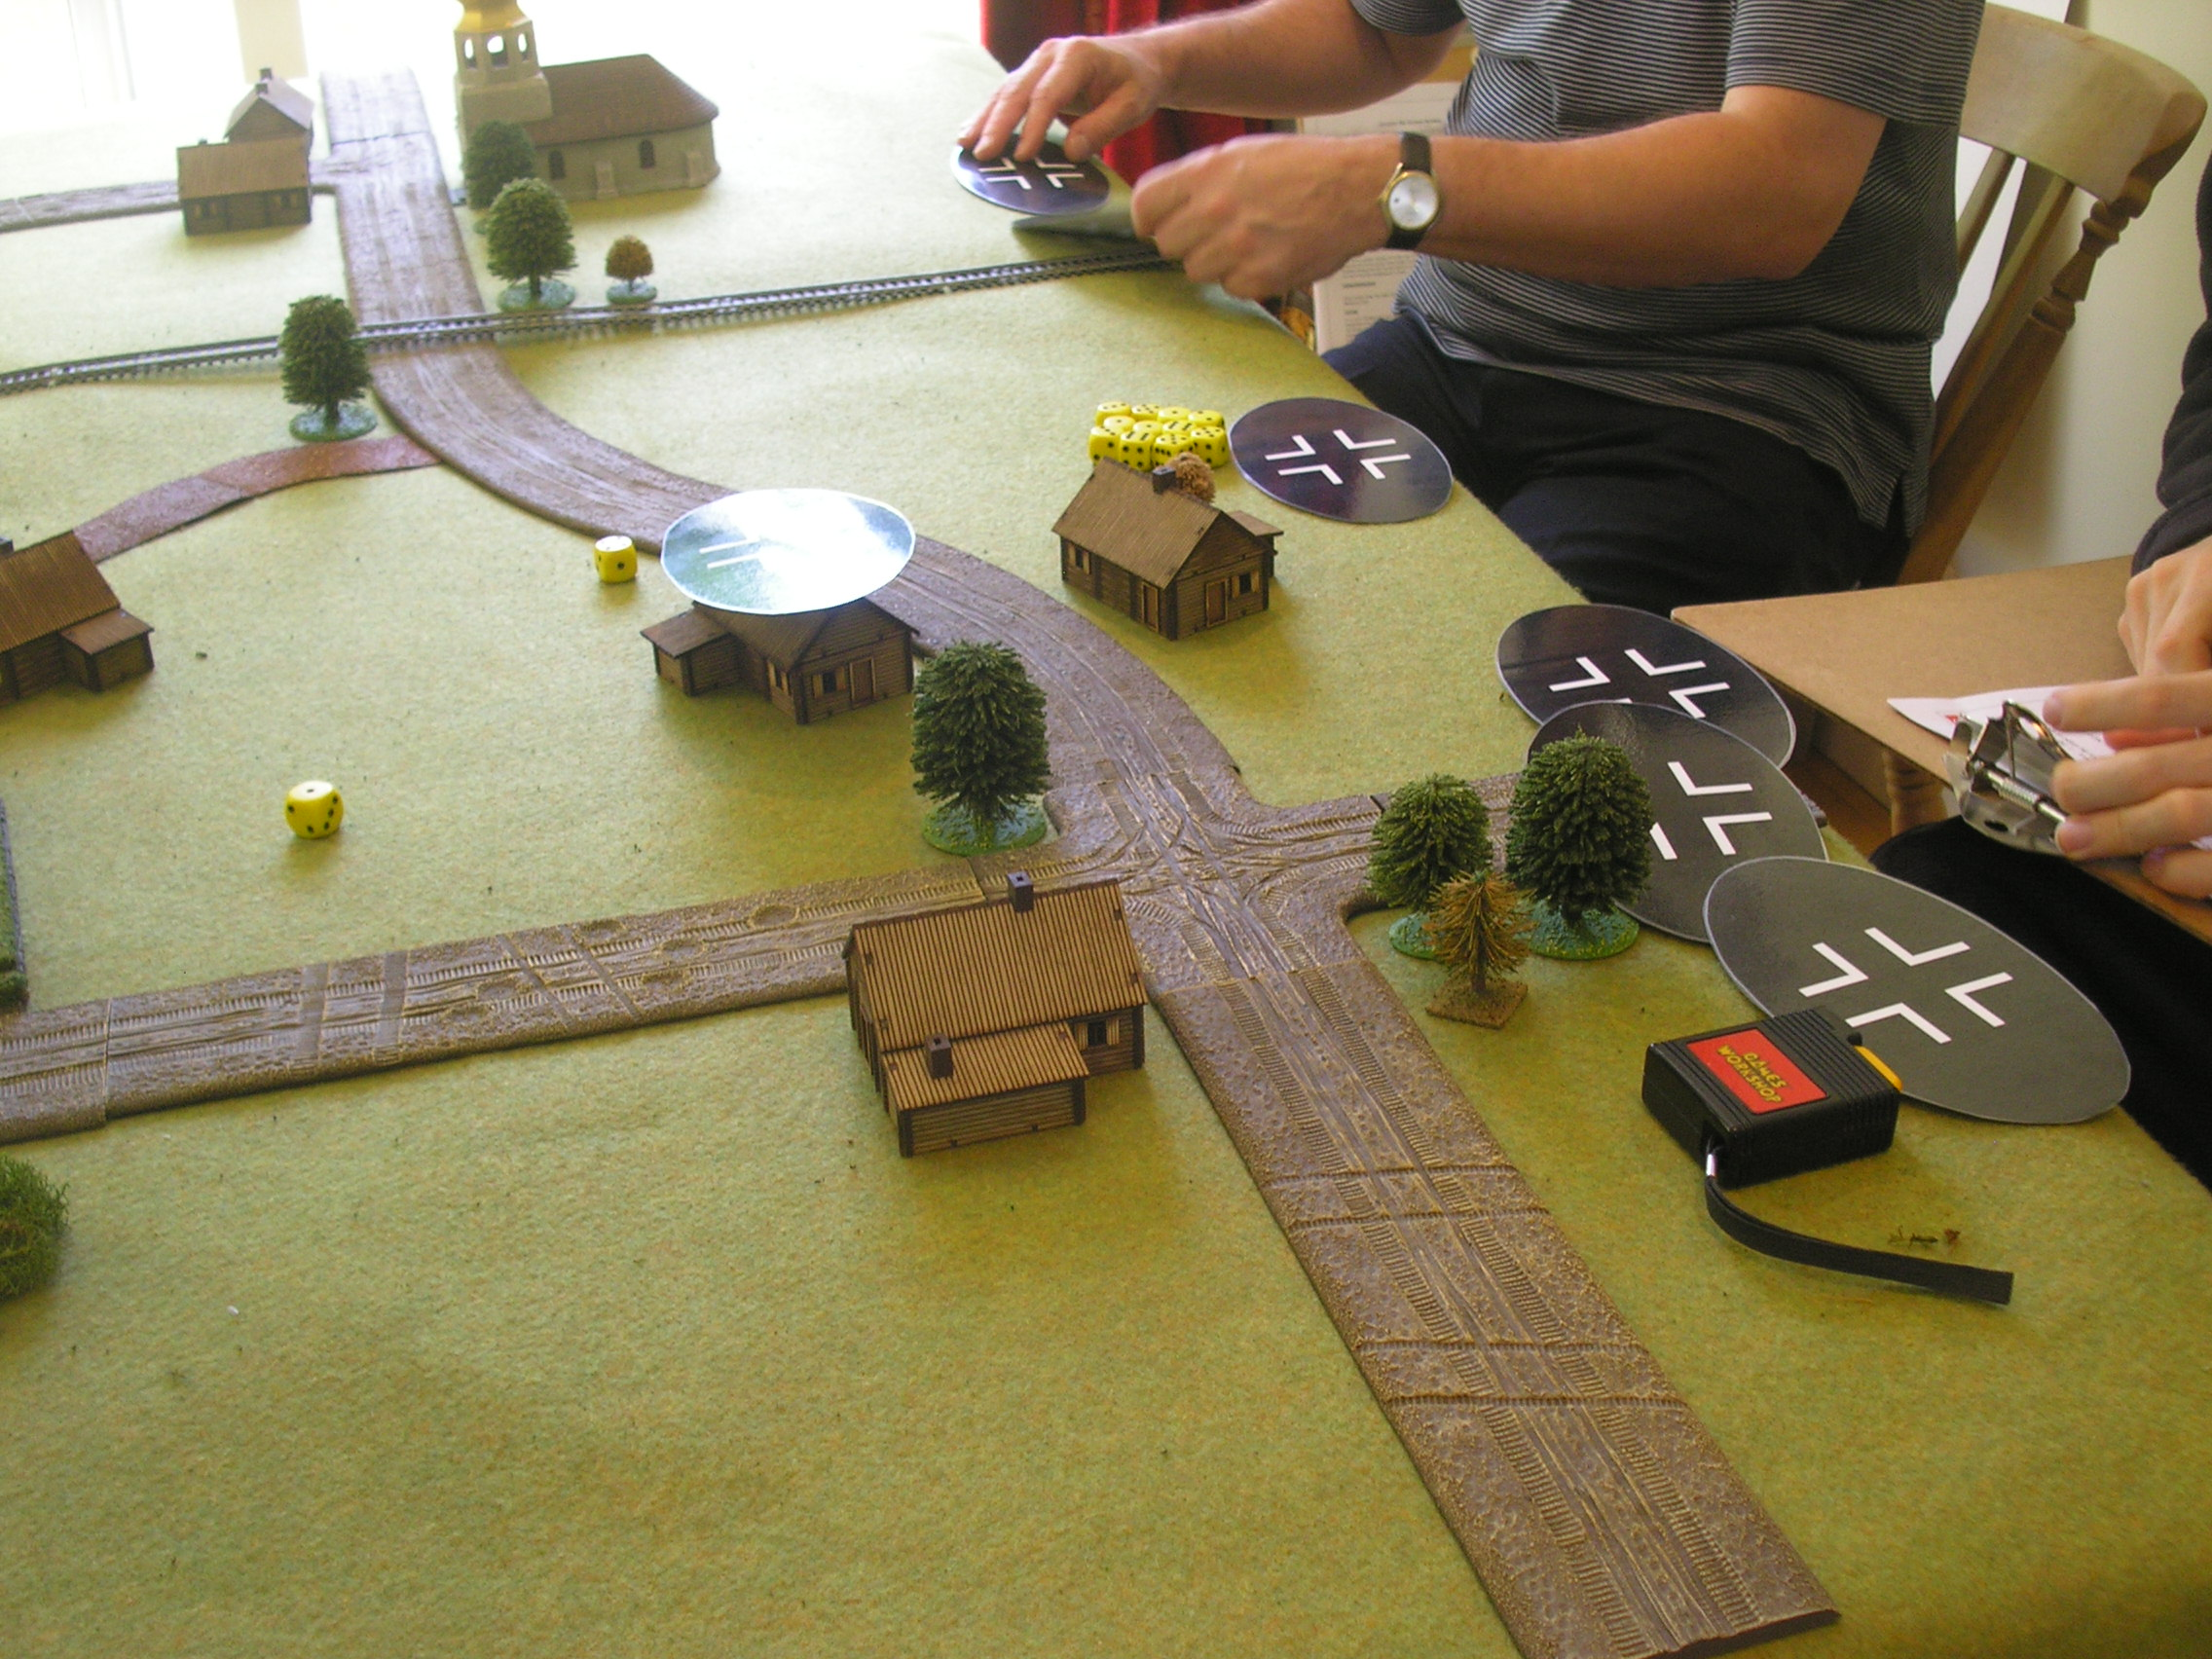 The Germans attack across A broad front